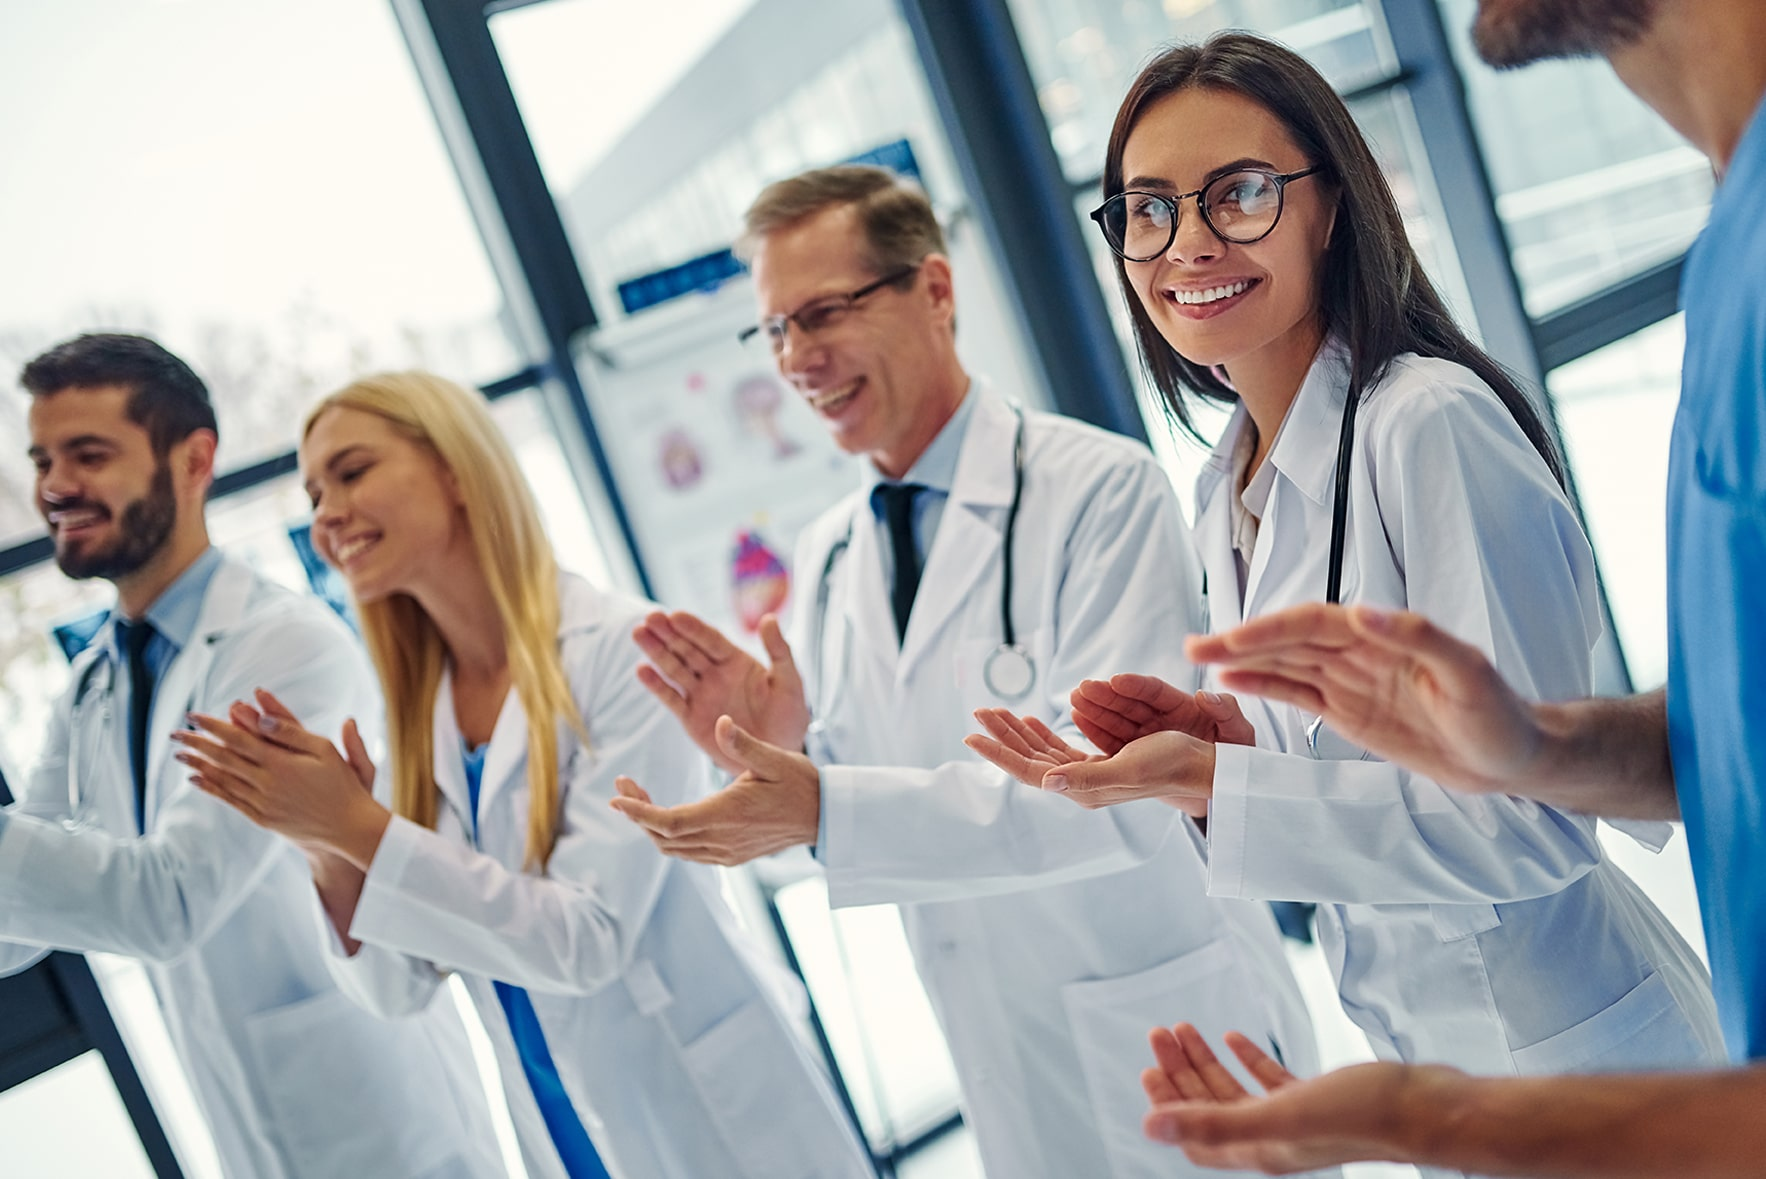 team of doctors applauding new technology